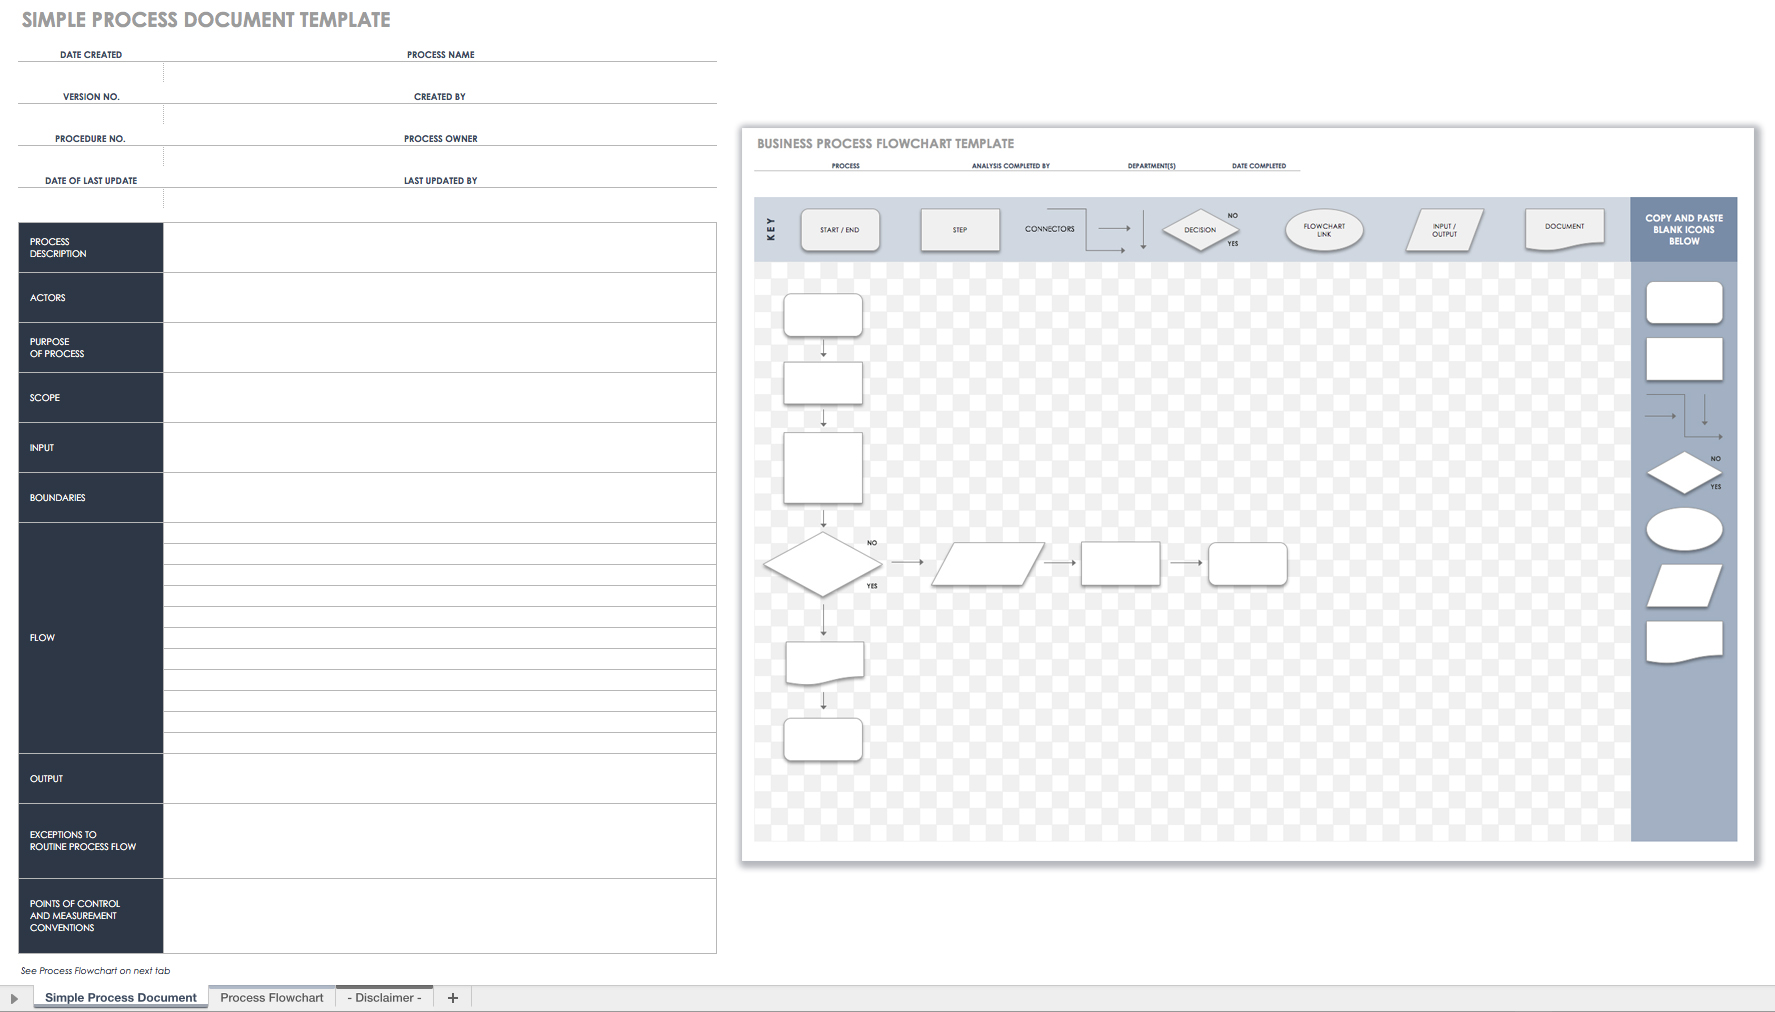 Free Process Document Template Excel For Process Document Template Excel For Google Spreadsheet